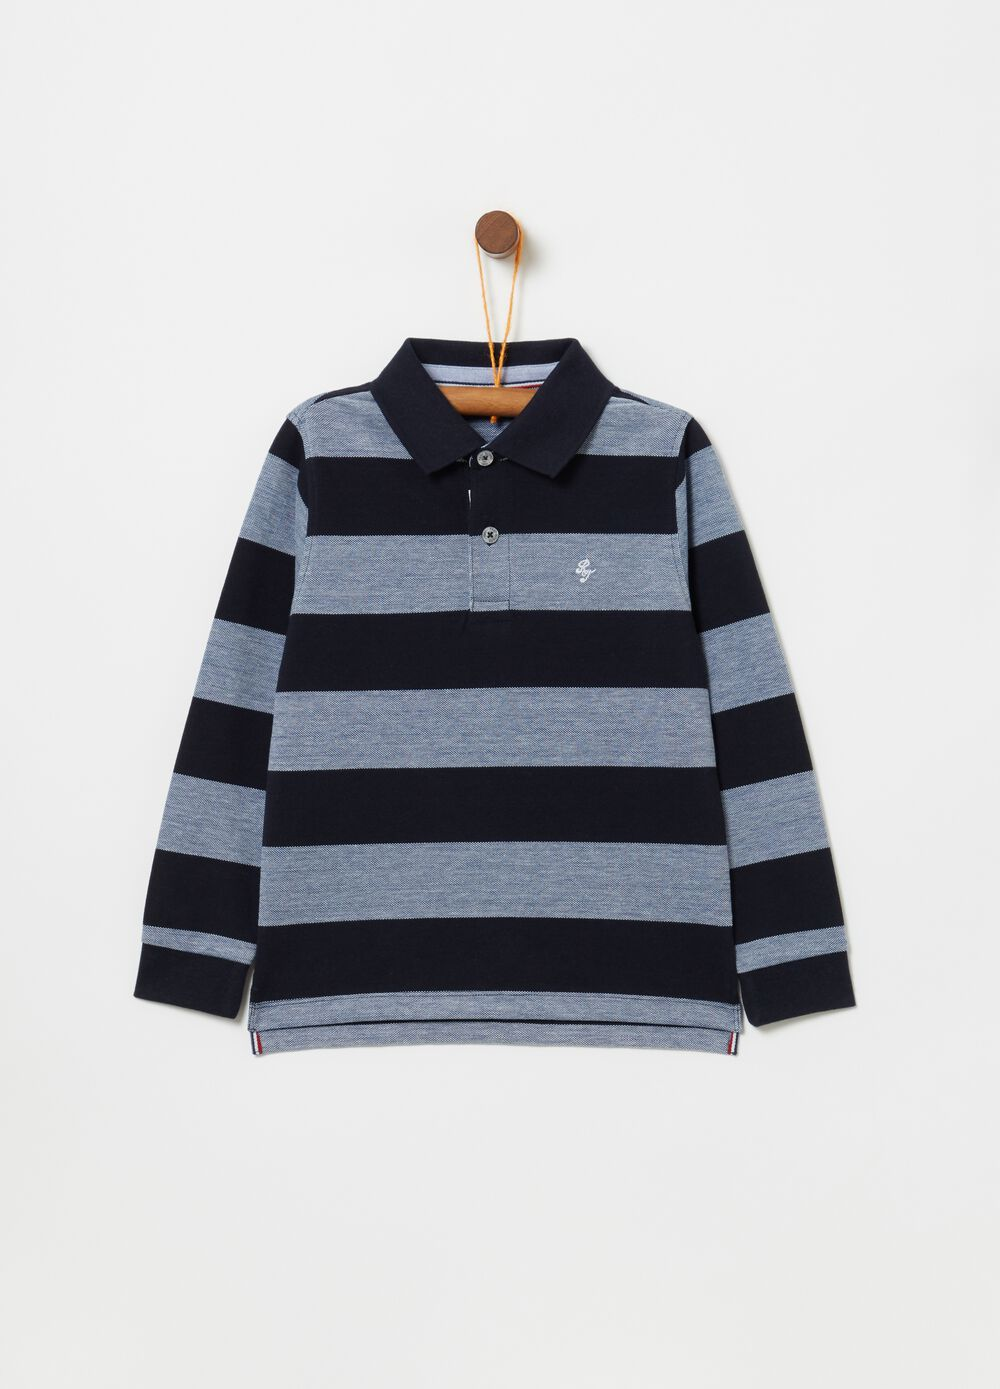 100% cotton piquet striped polo shirt